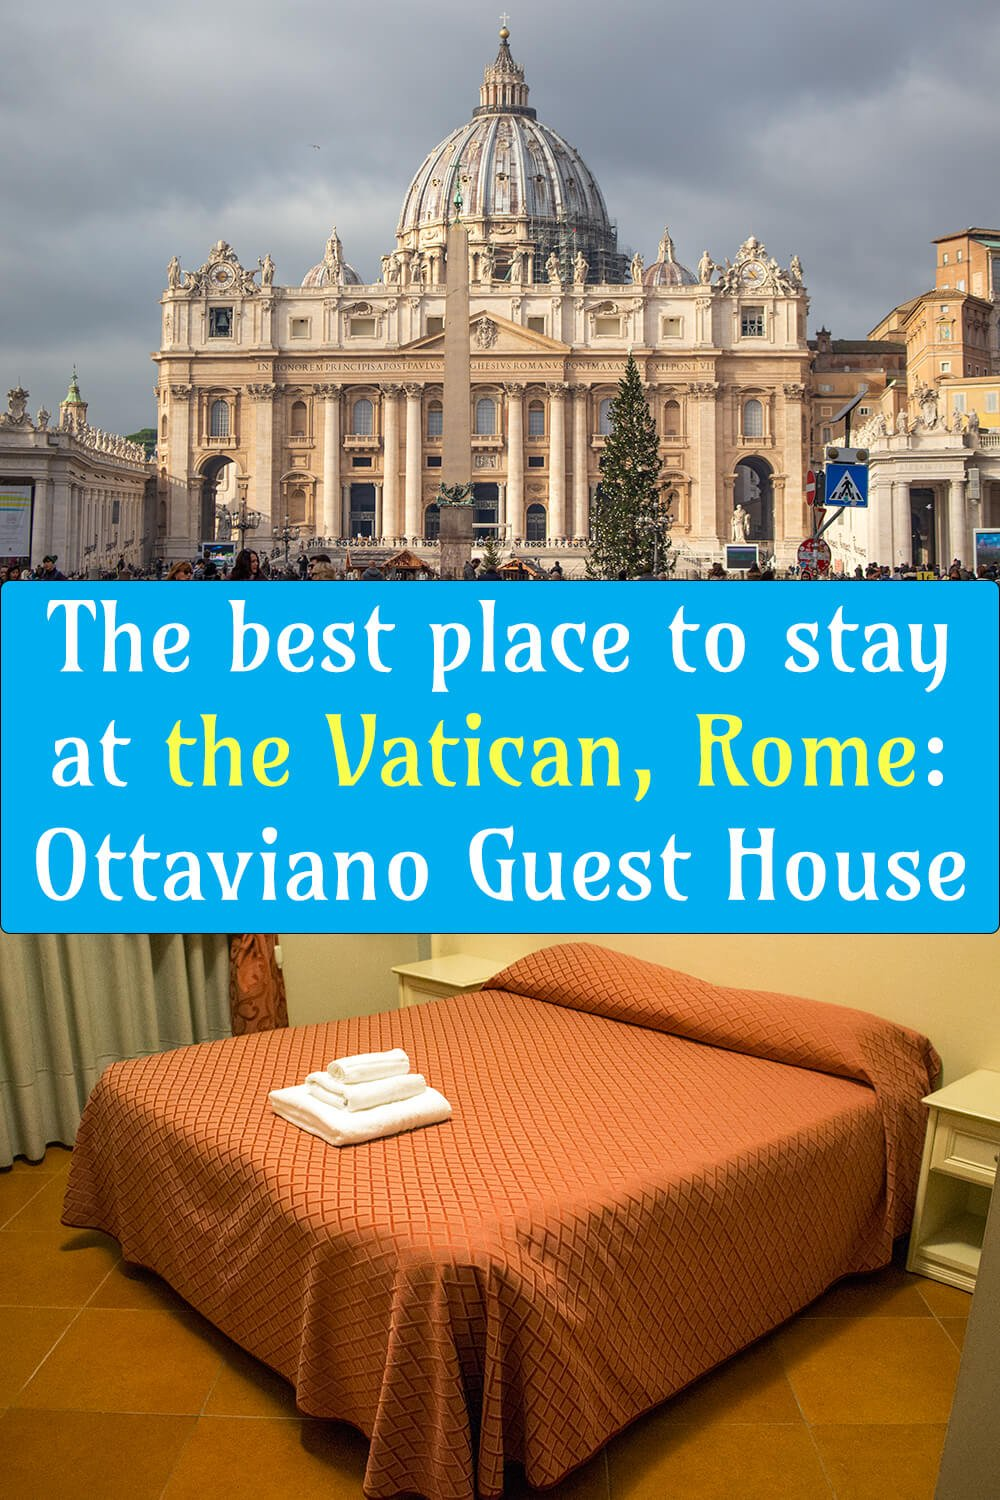 The best place to stay at the Vatican, Rome: Ottaviano Guest House | Where to stay in Rome: Ottaviano Guest House | The best hotel to stay at the Vatican, Rome: Ottaviano Guest House | The best hotel to stay in Rome: Ottaviano Guest House |